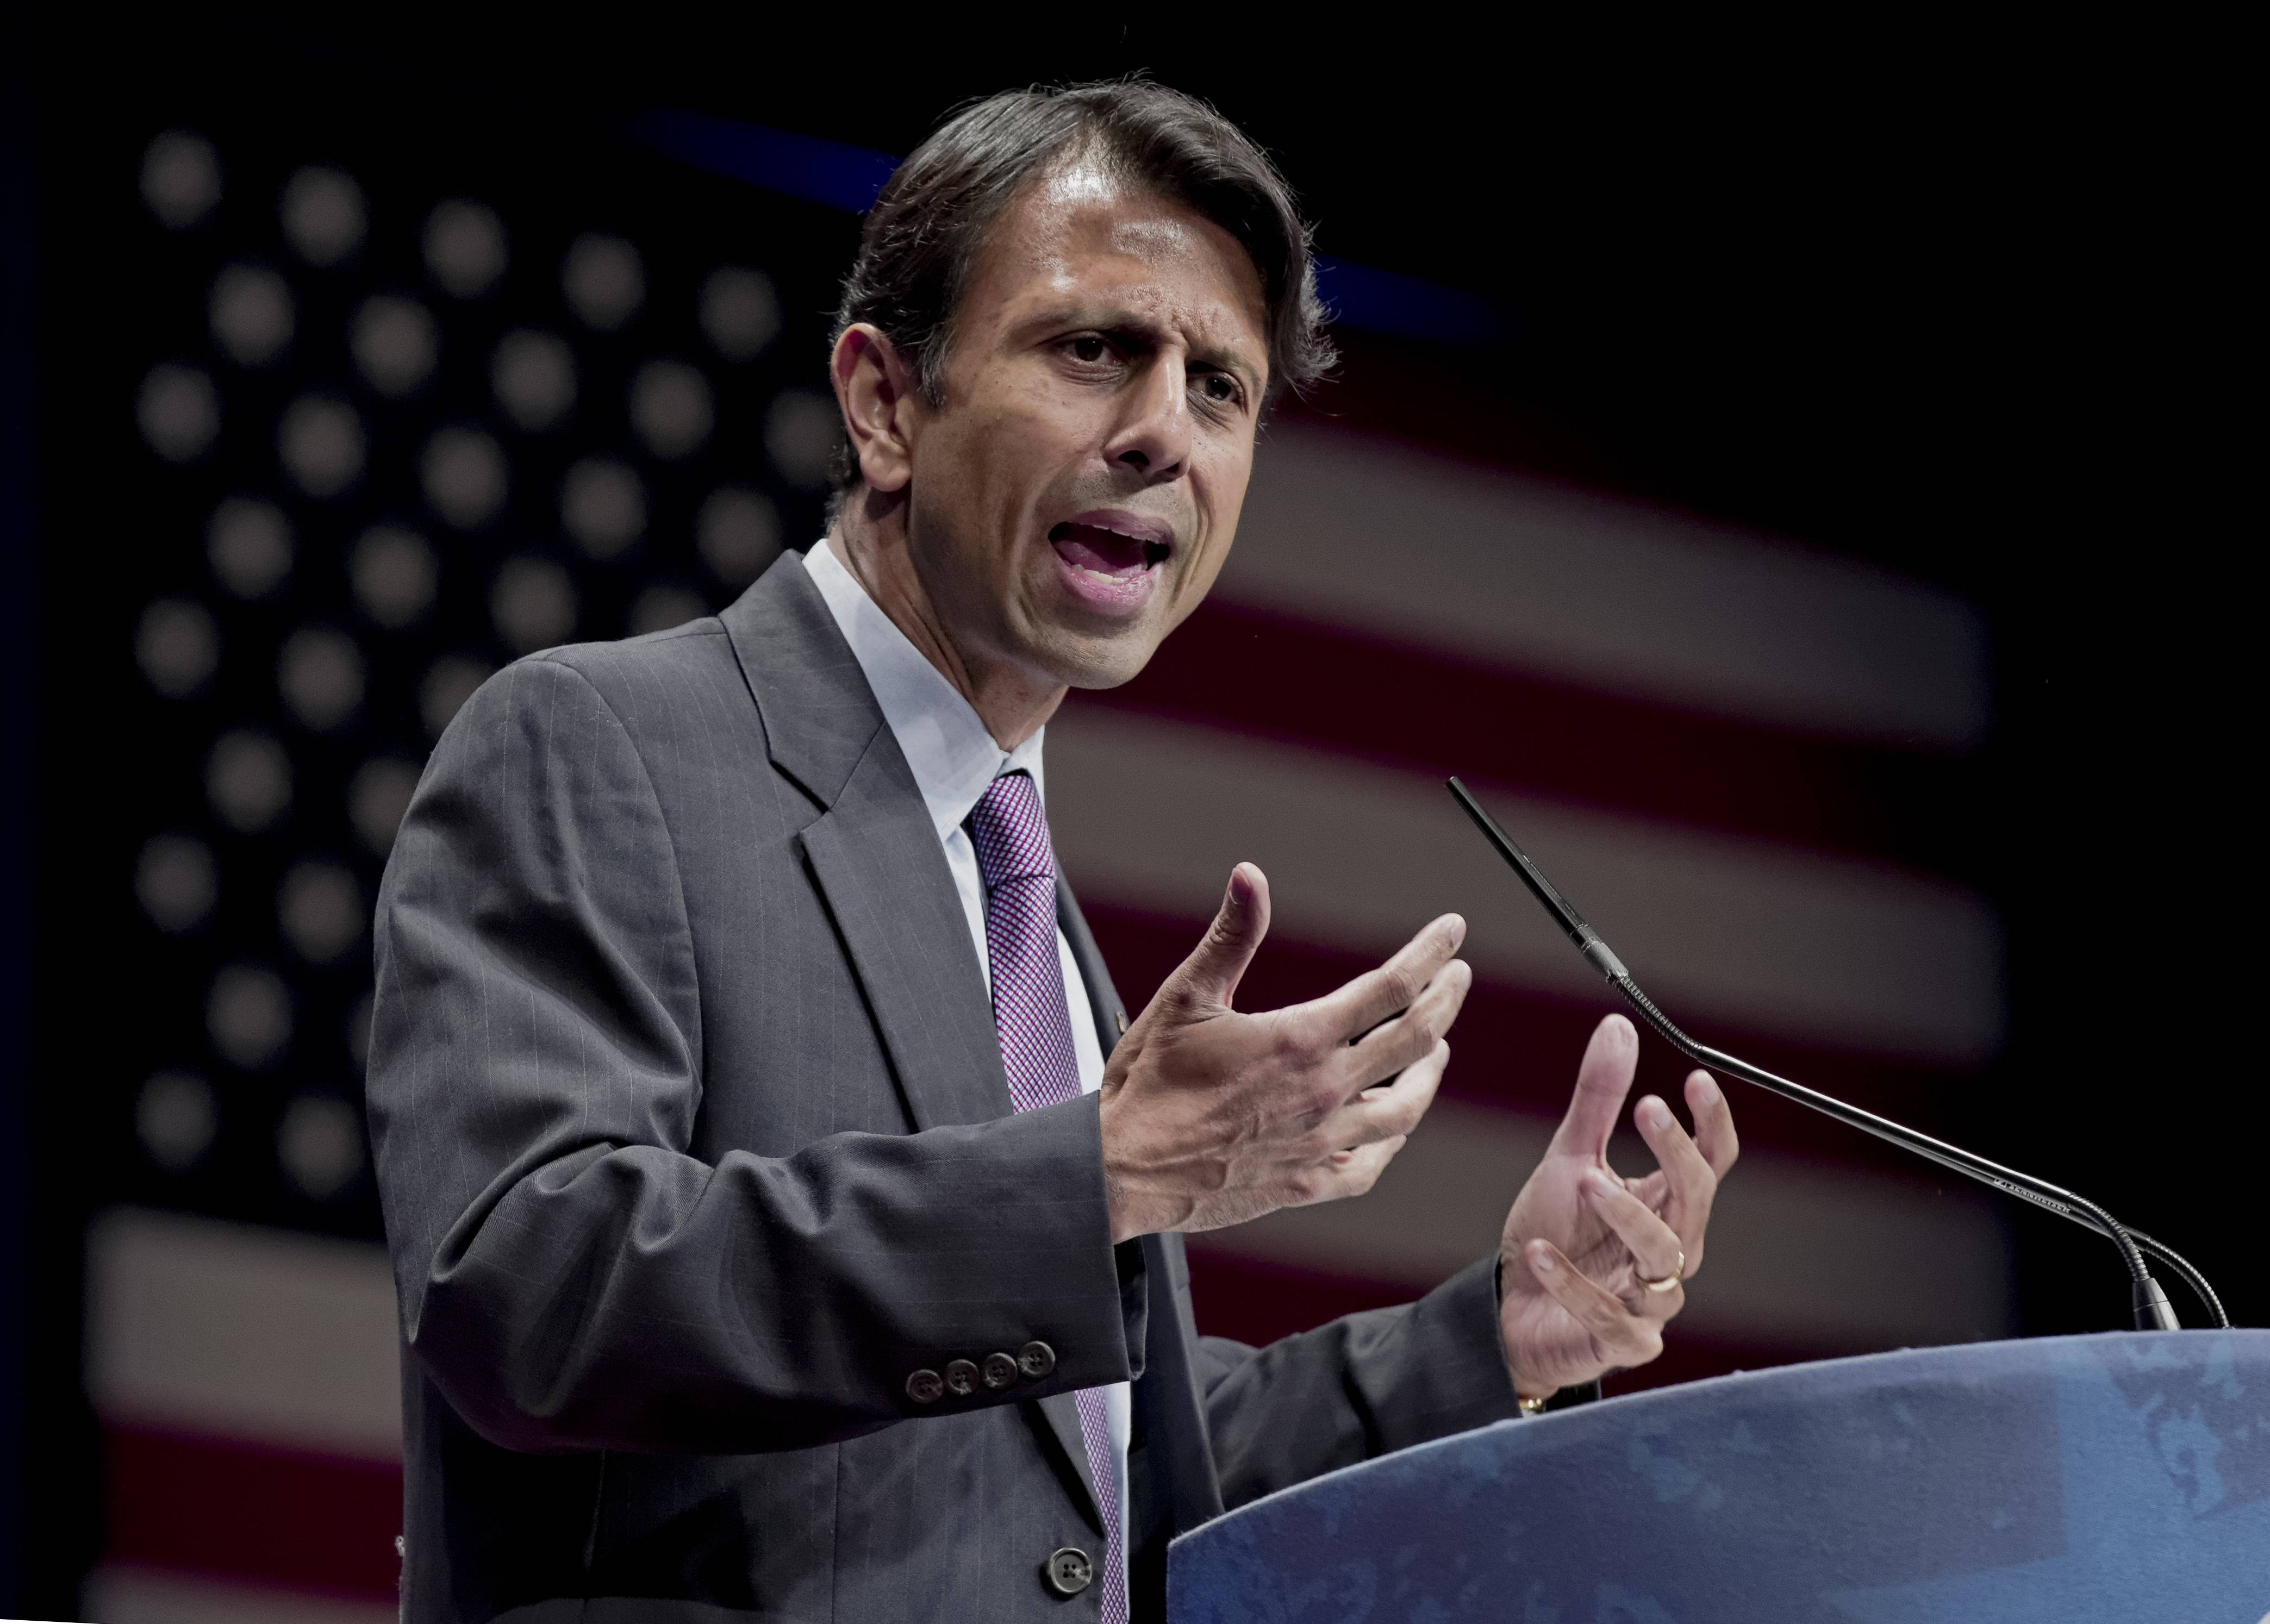 Republican Gov. Bobby Jindal of Louisiana filed a lawsuit Wednesday Aug. 27, 2014 against the Obama administration, accusing it of illegally manipulating federal grant money and regulations to force states to adopt the Common Core education standards.